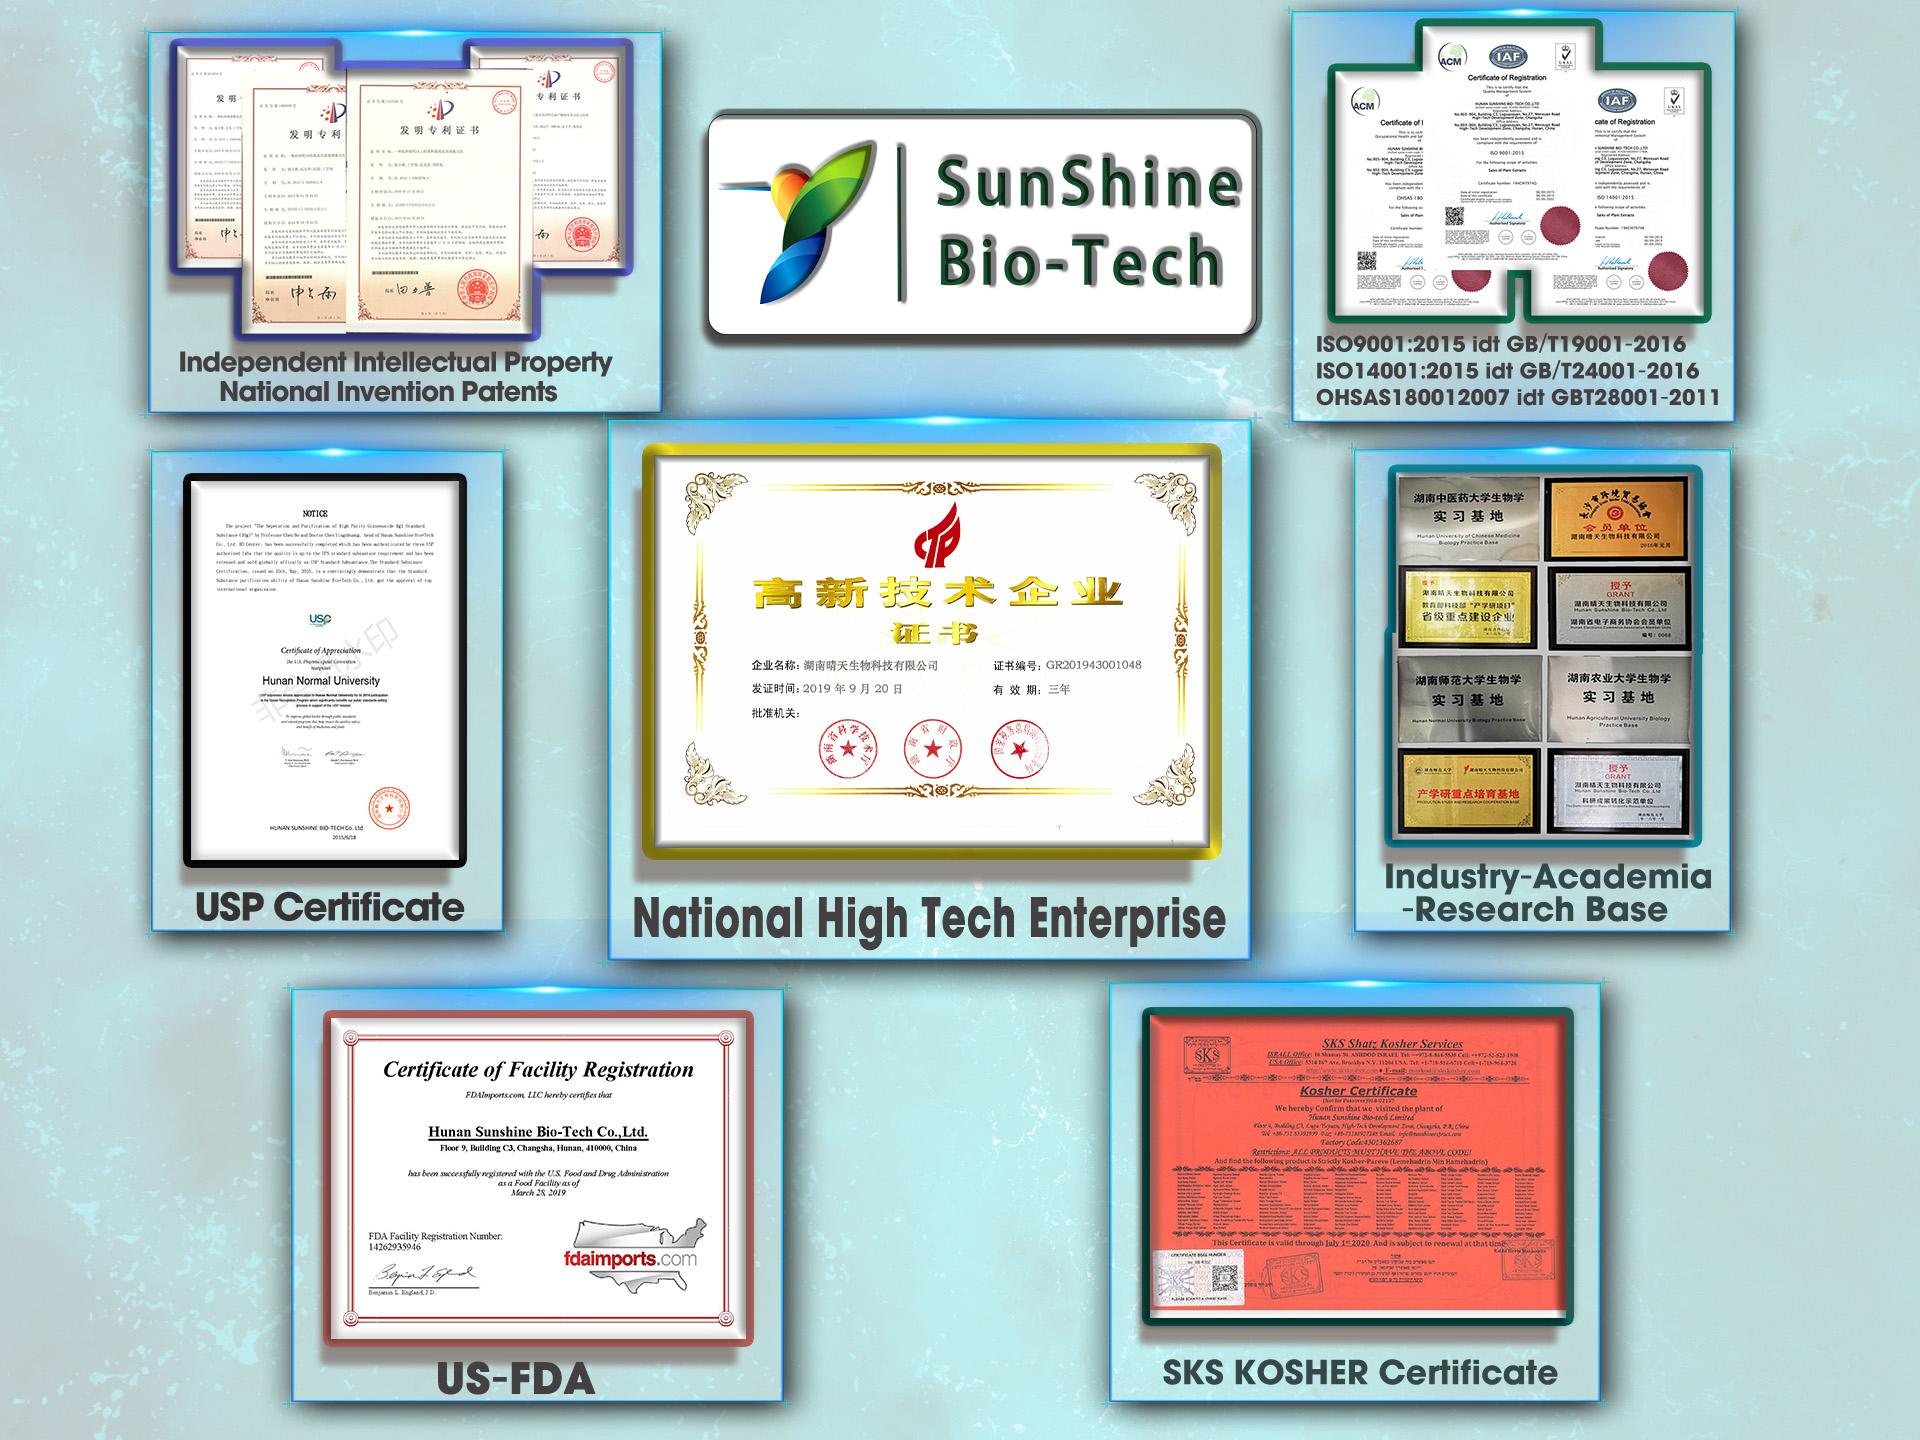 SQT Sunshine Biotech is the National High-Tech Enterprise of China